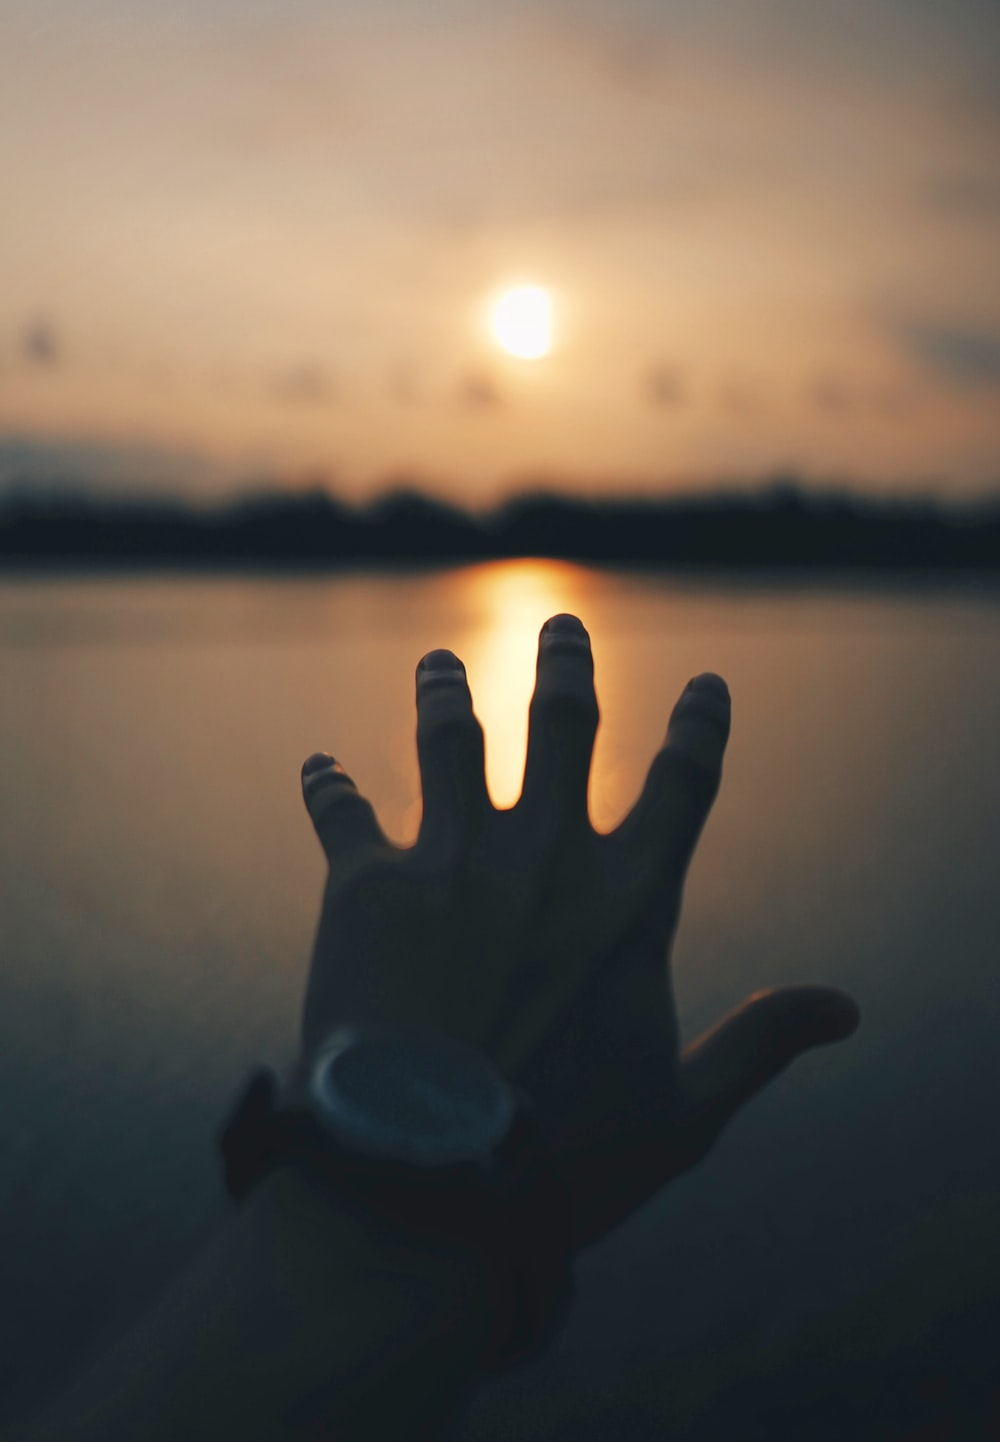 persons hand near body of water during sunset